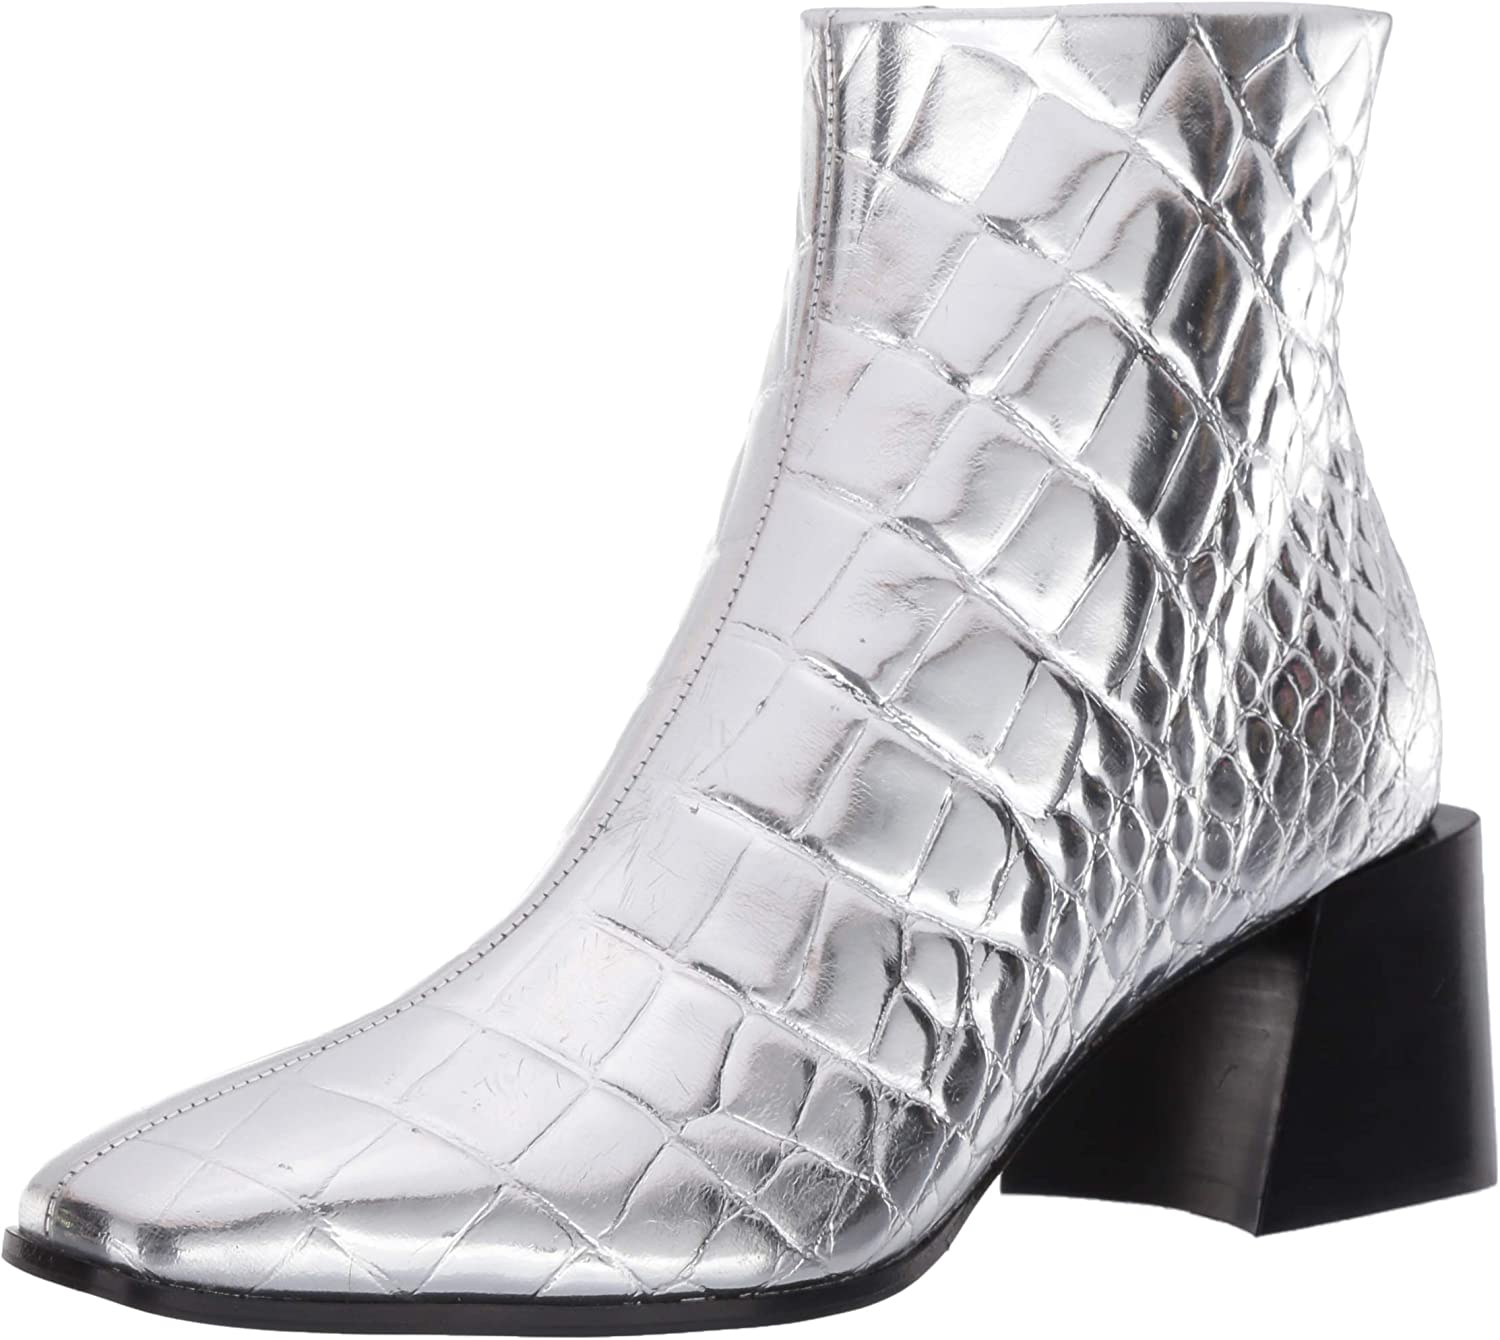 Sigerson Morrison Womens Bootie Ankle Boot